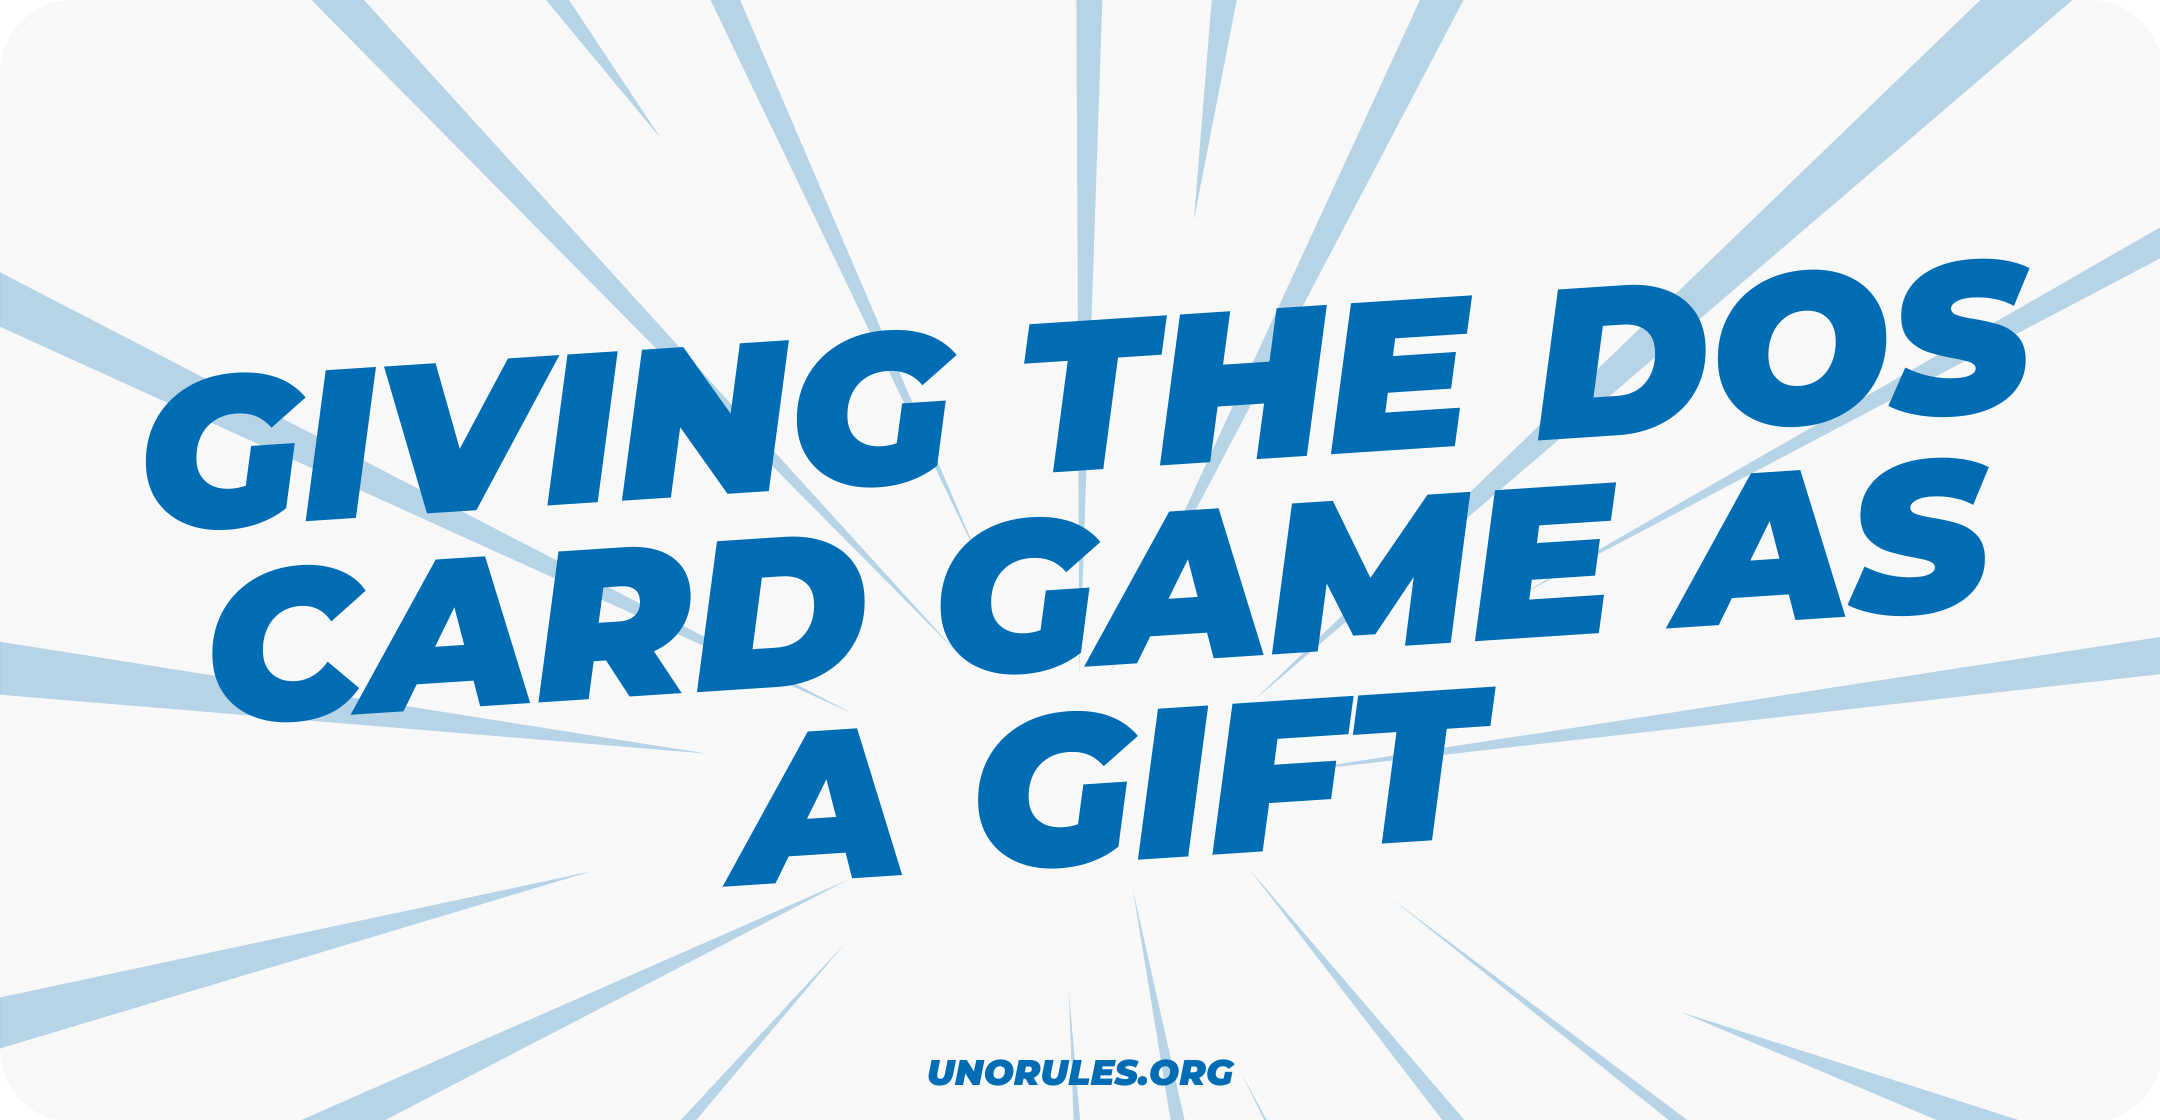 Giving the Dos card game as a gift